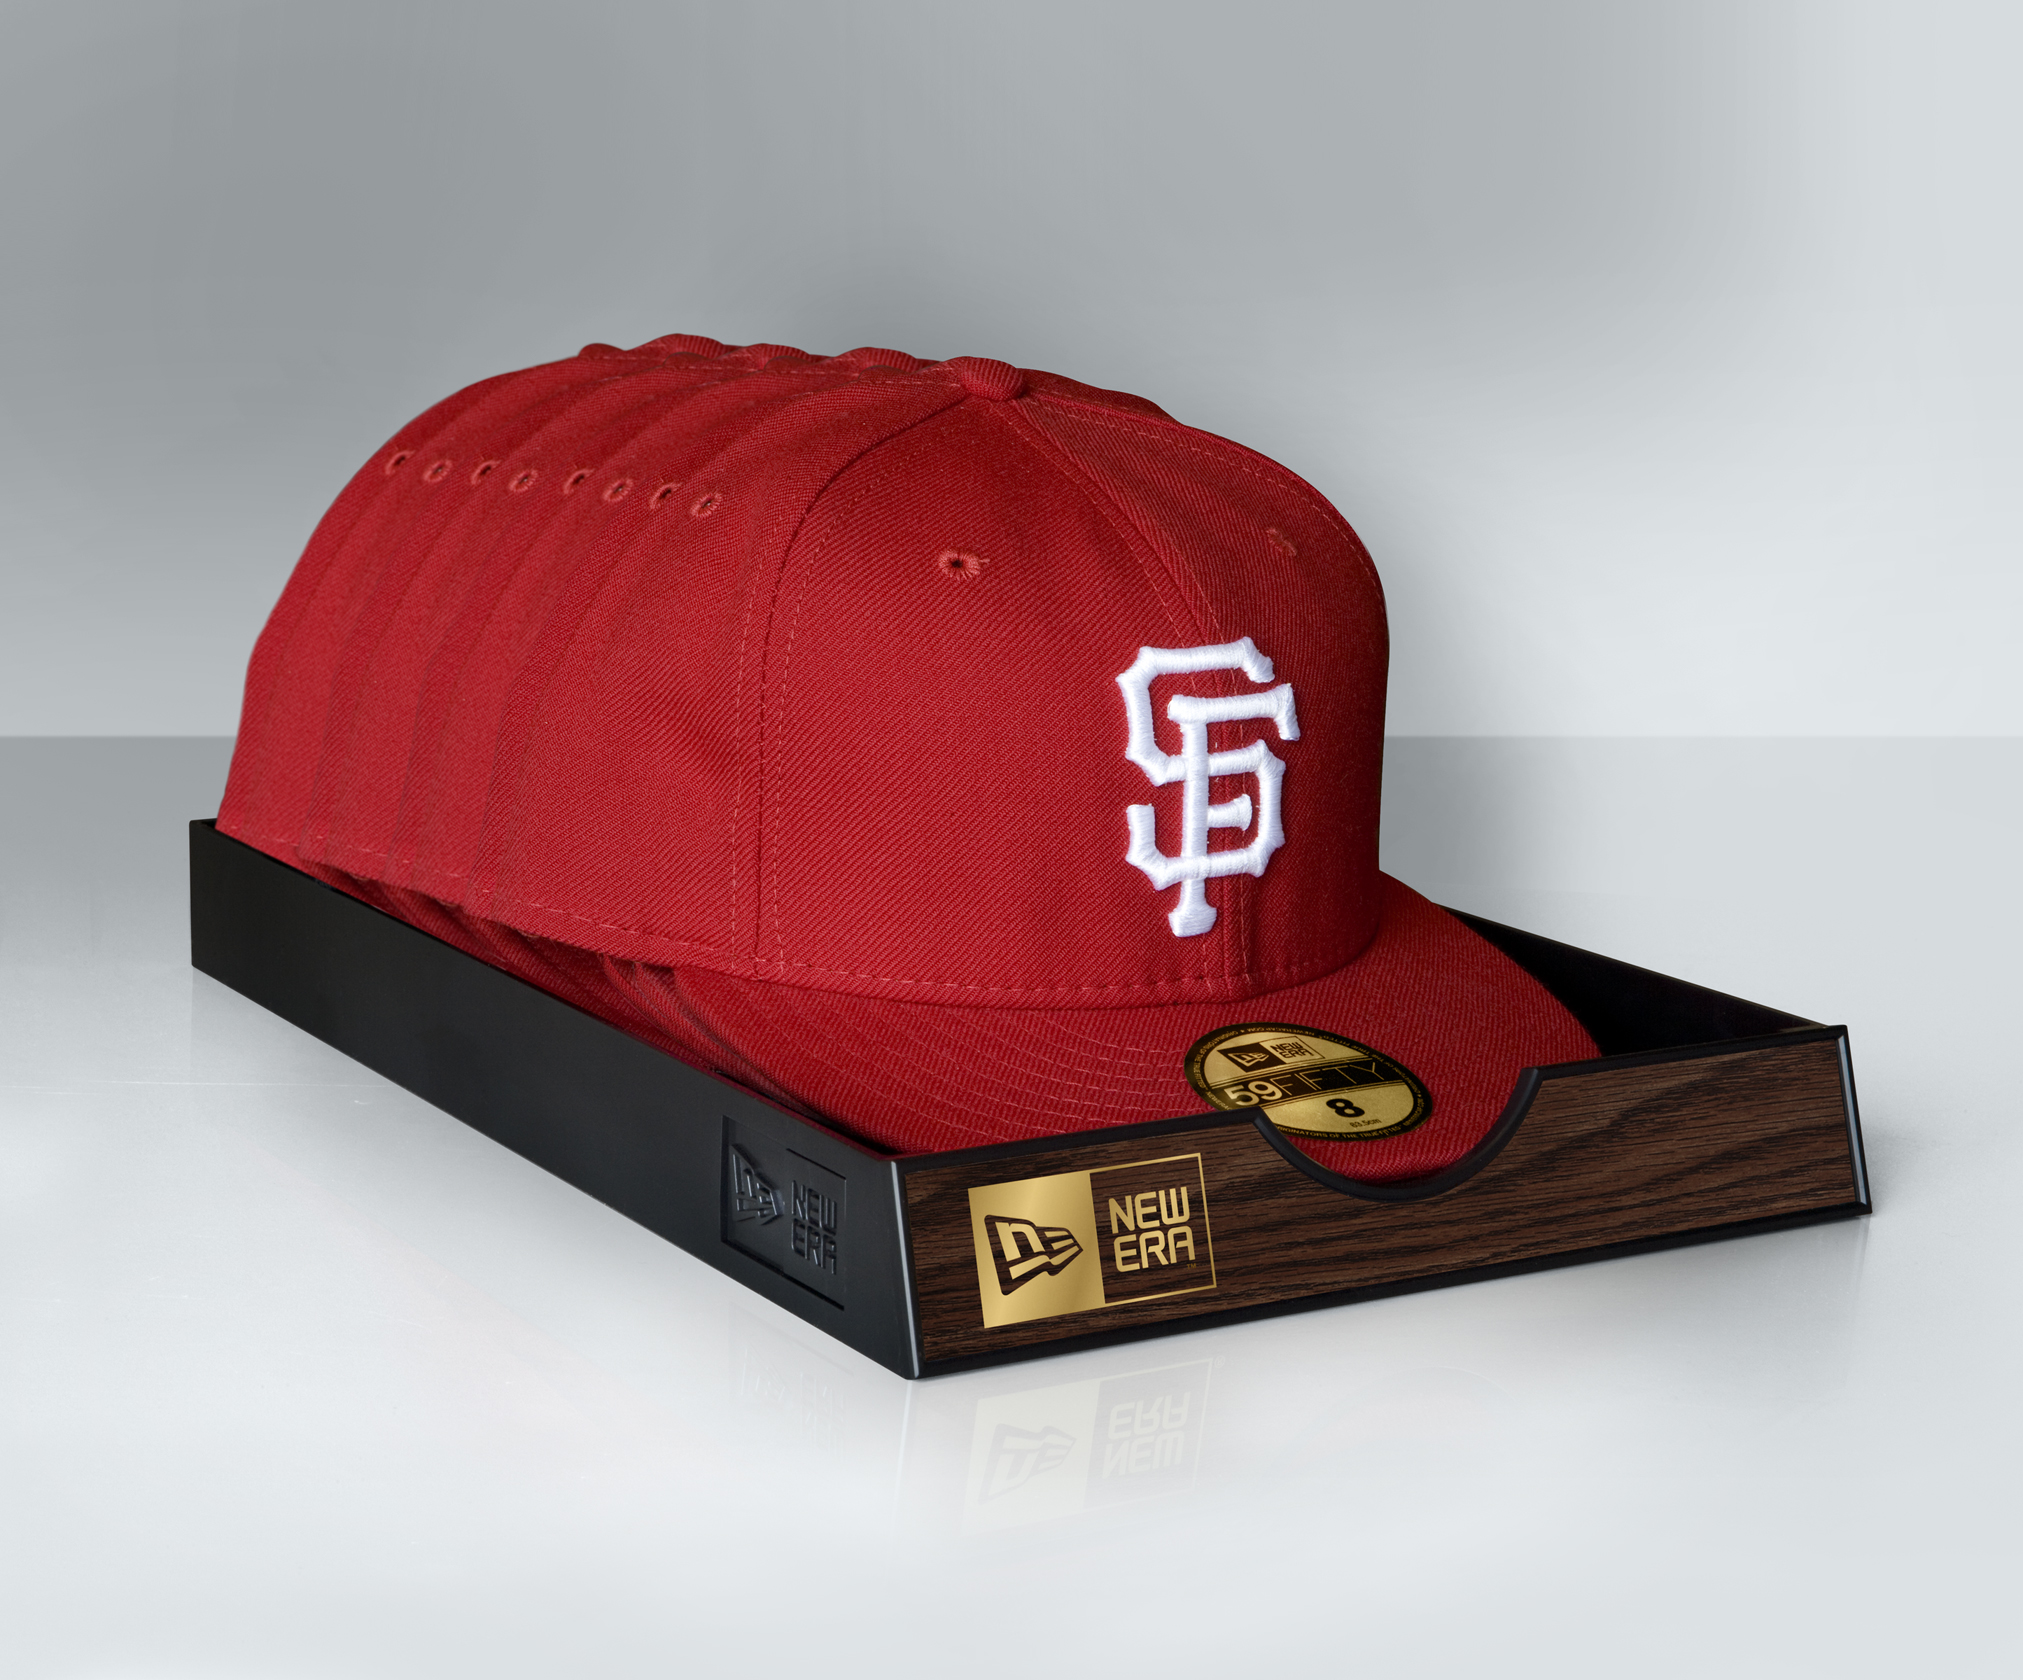 Product display of New Era SF red fitted hats